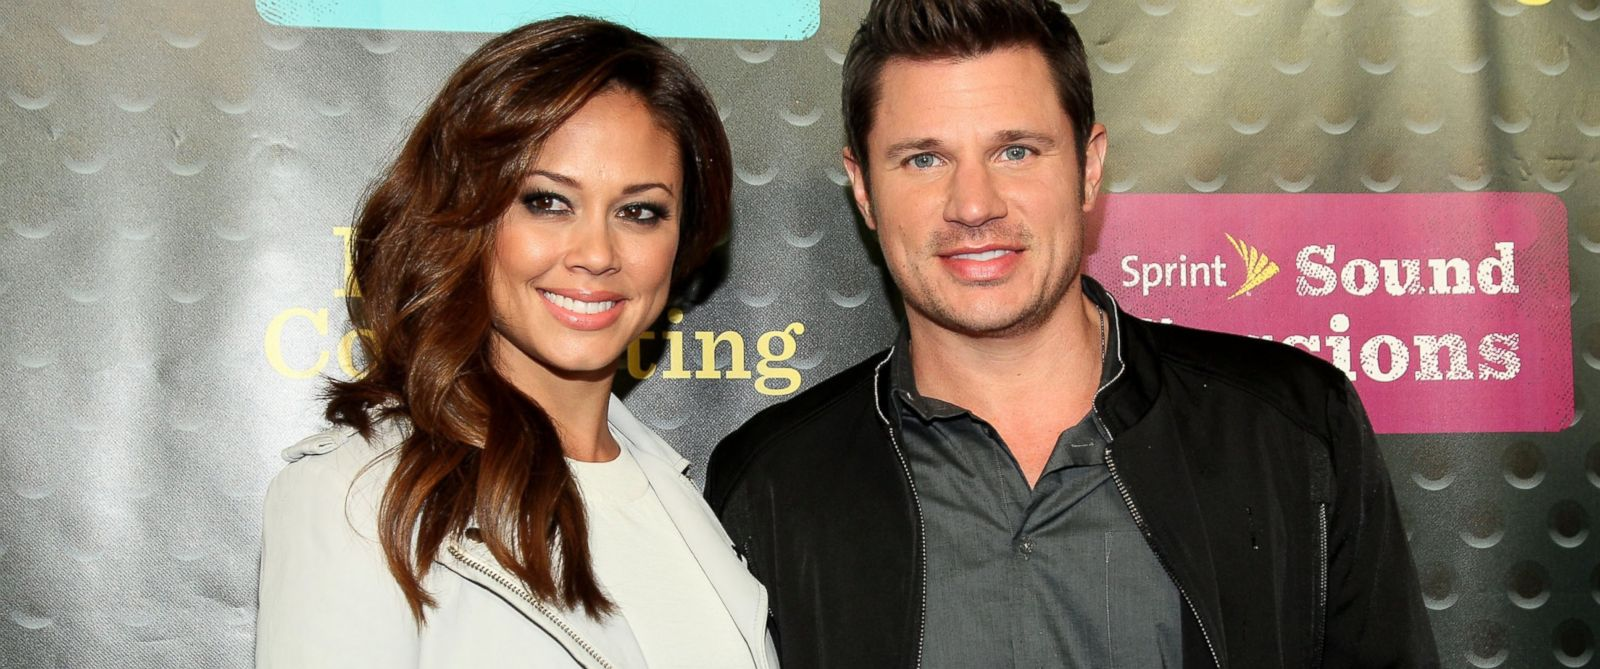 PHOTO: Vanessa Minnillo and Nick Lachey are seen at Webster Hall on April 29, 2014 in New York City.